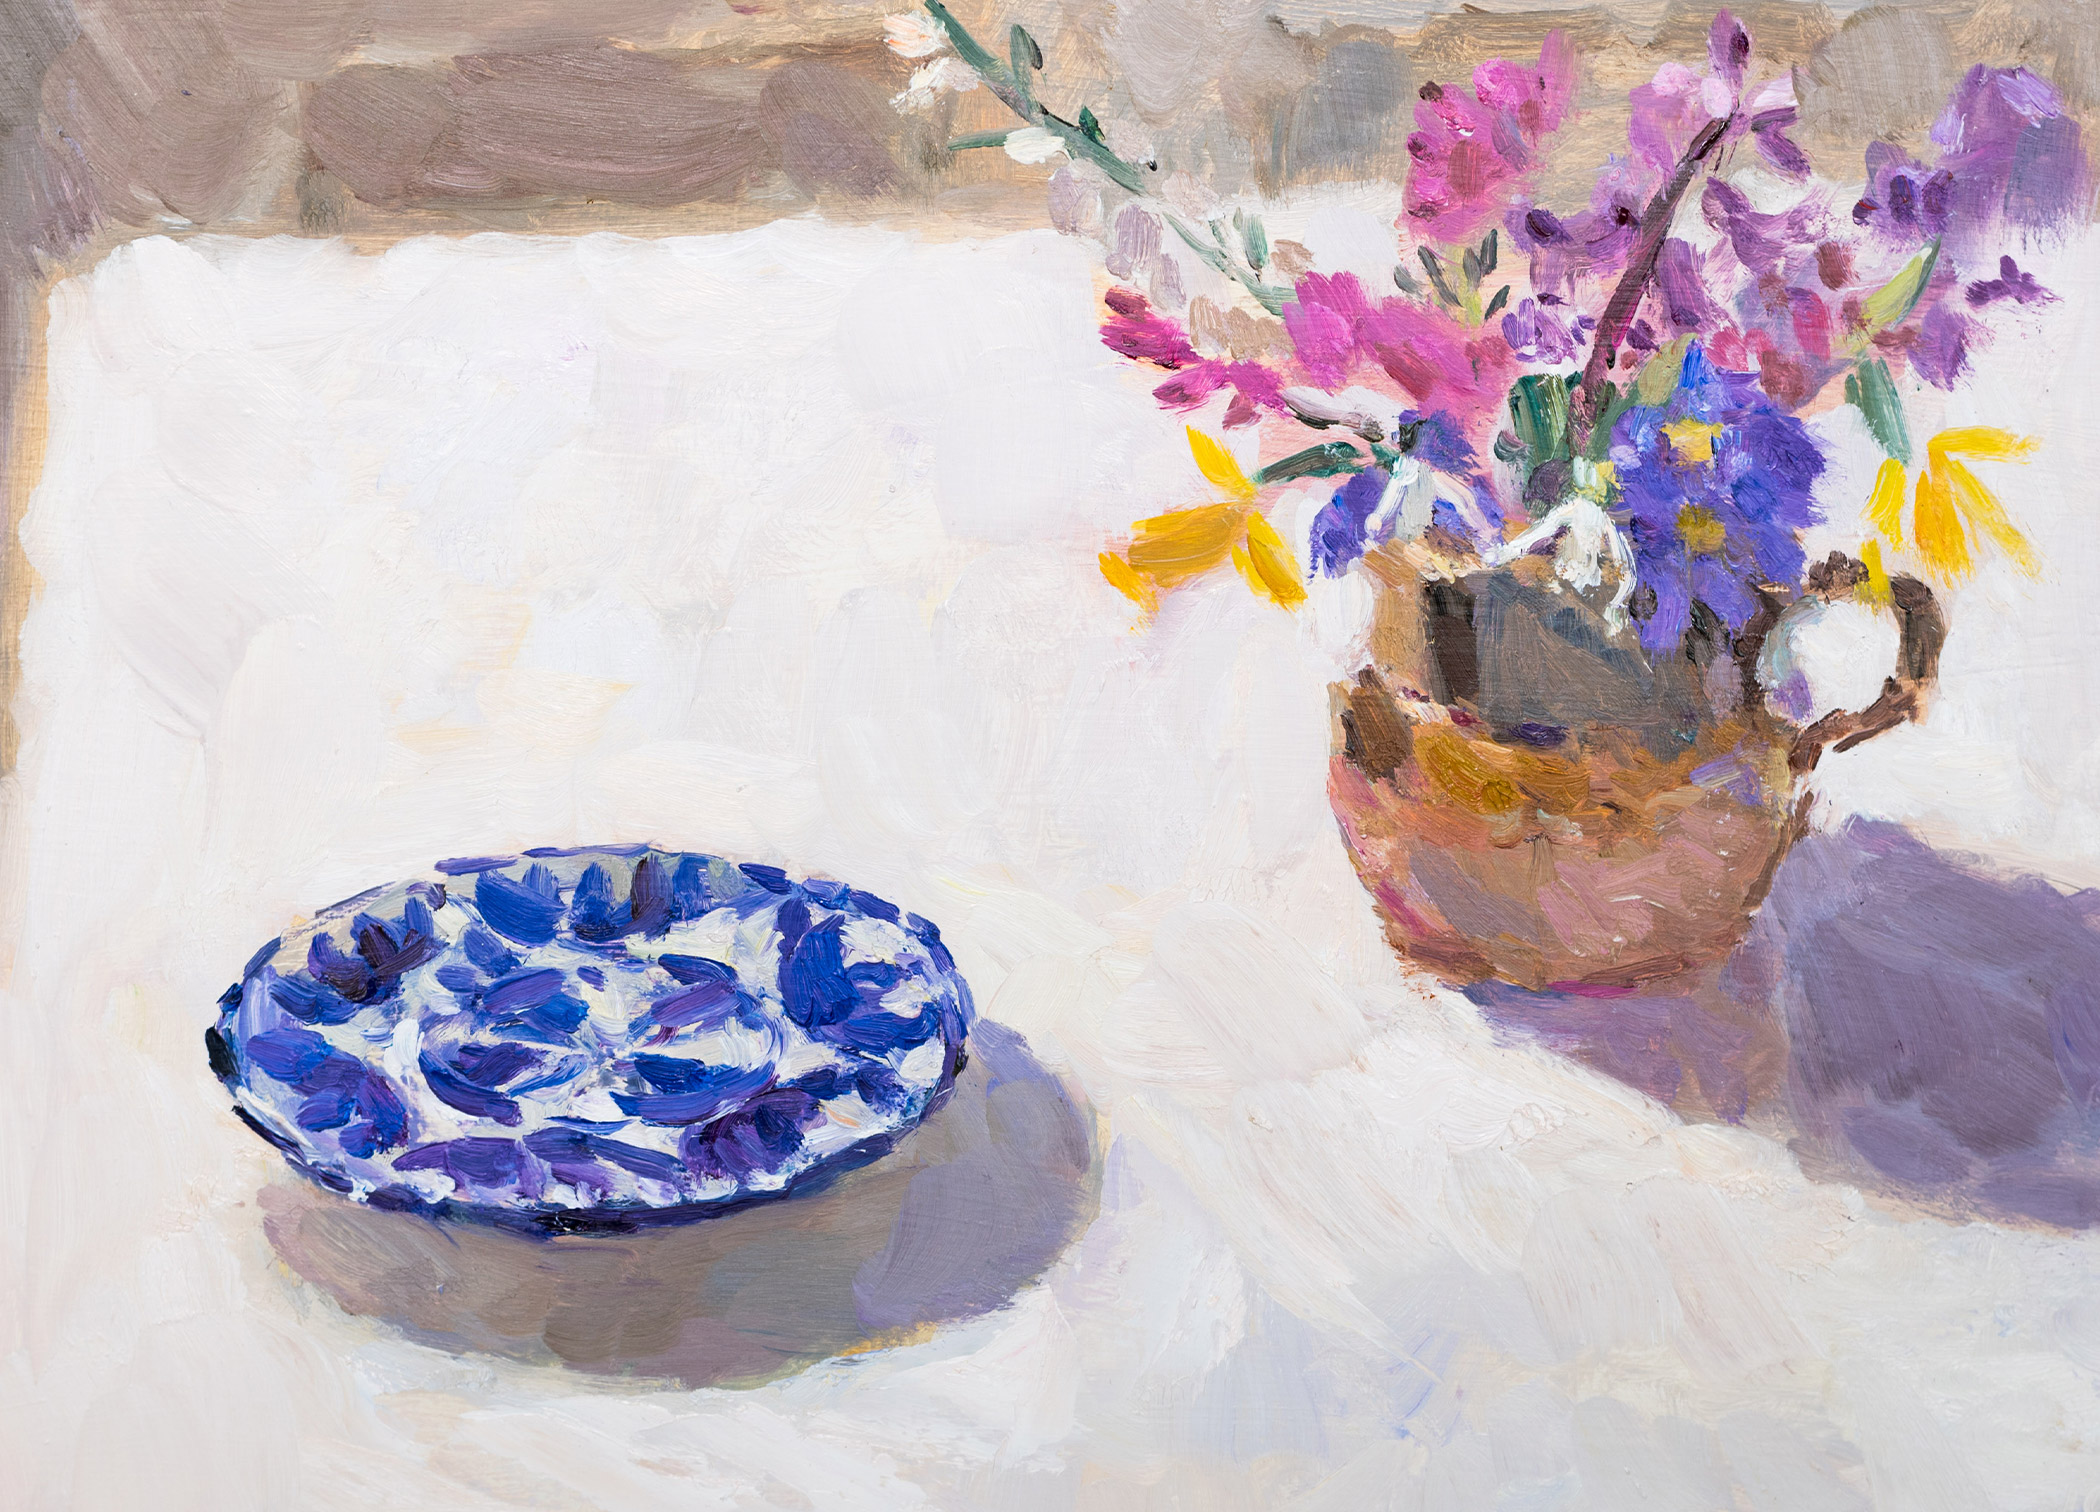 Spring Flowers with a Blue Patterned Plate